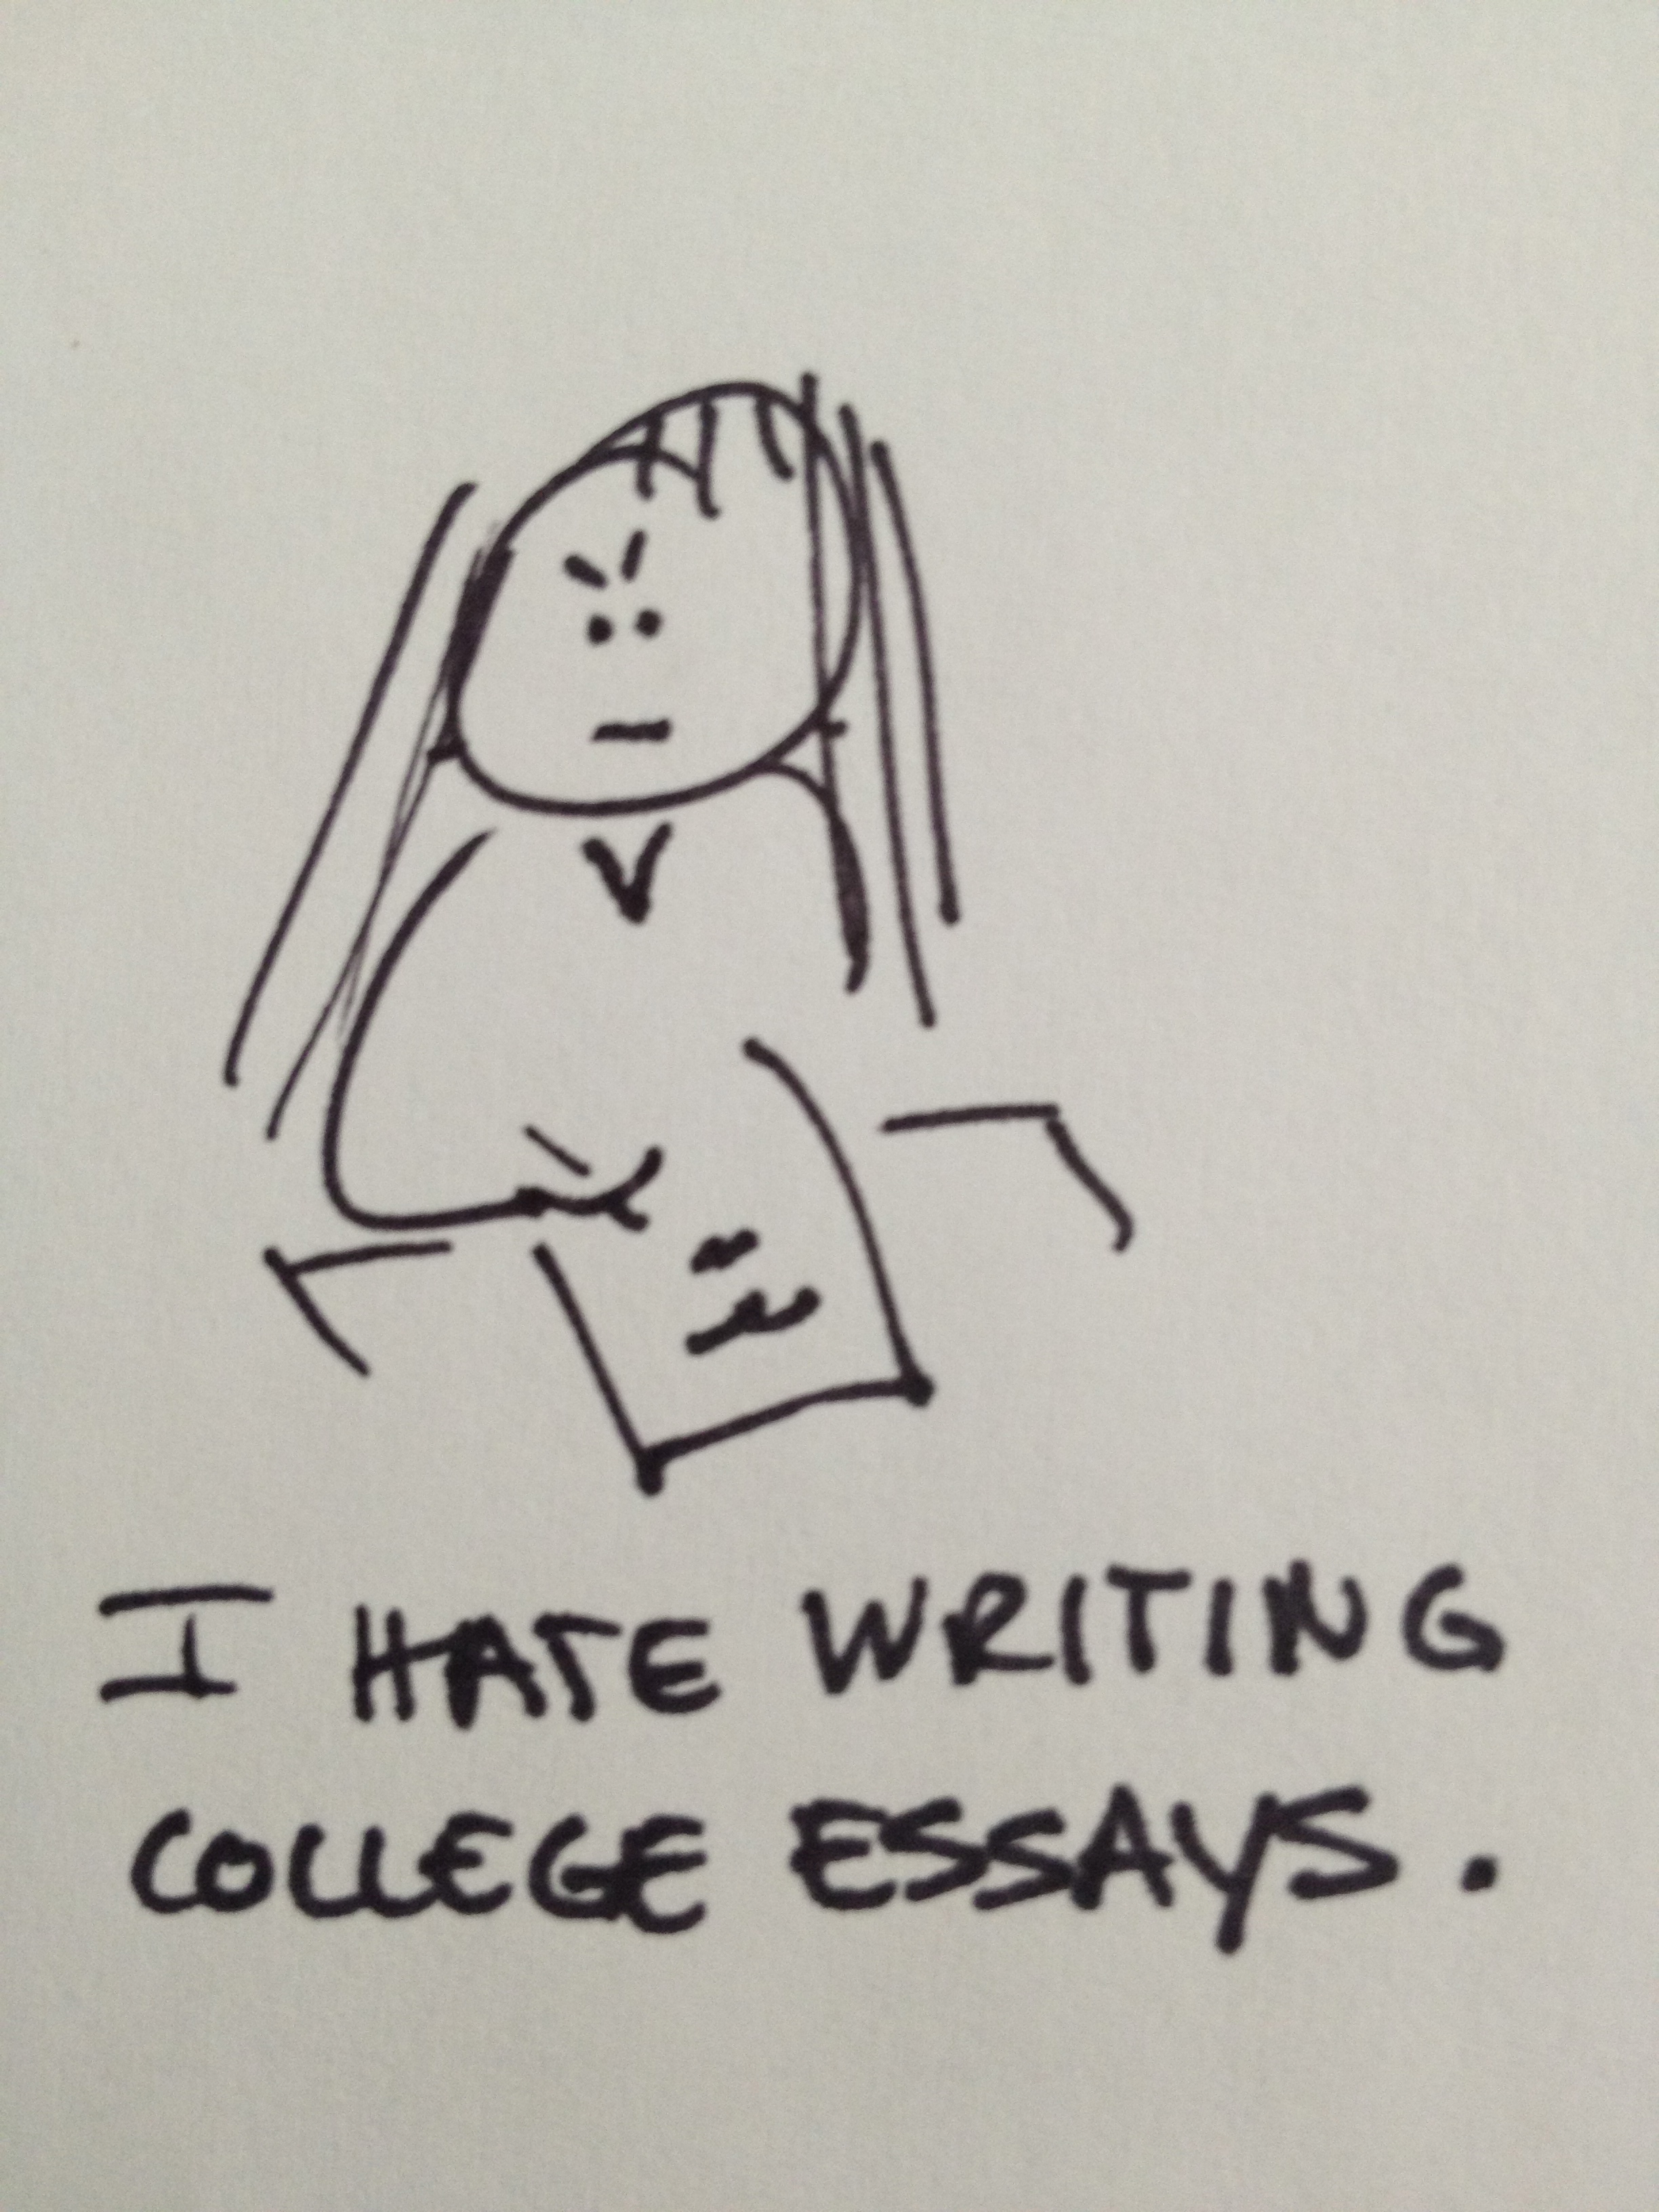 Can anyone offer me some advice on writing a good college admissions essay?